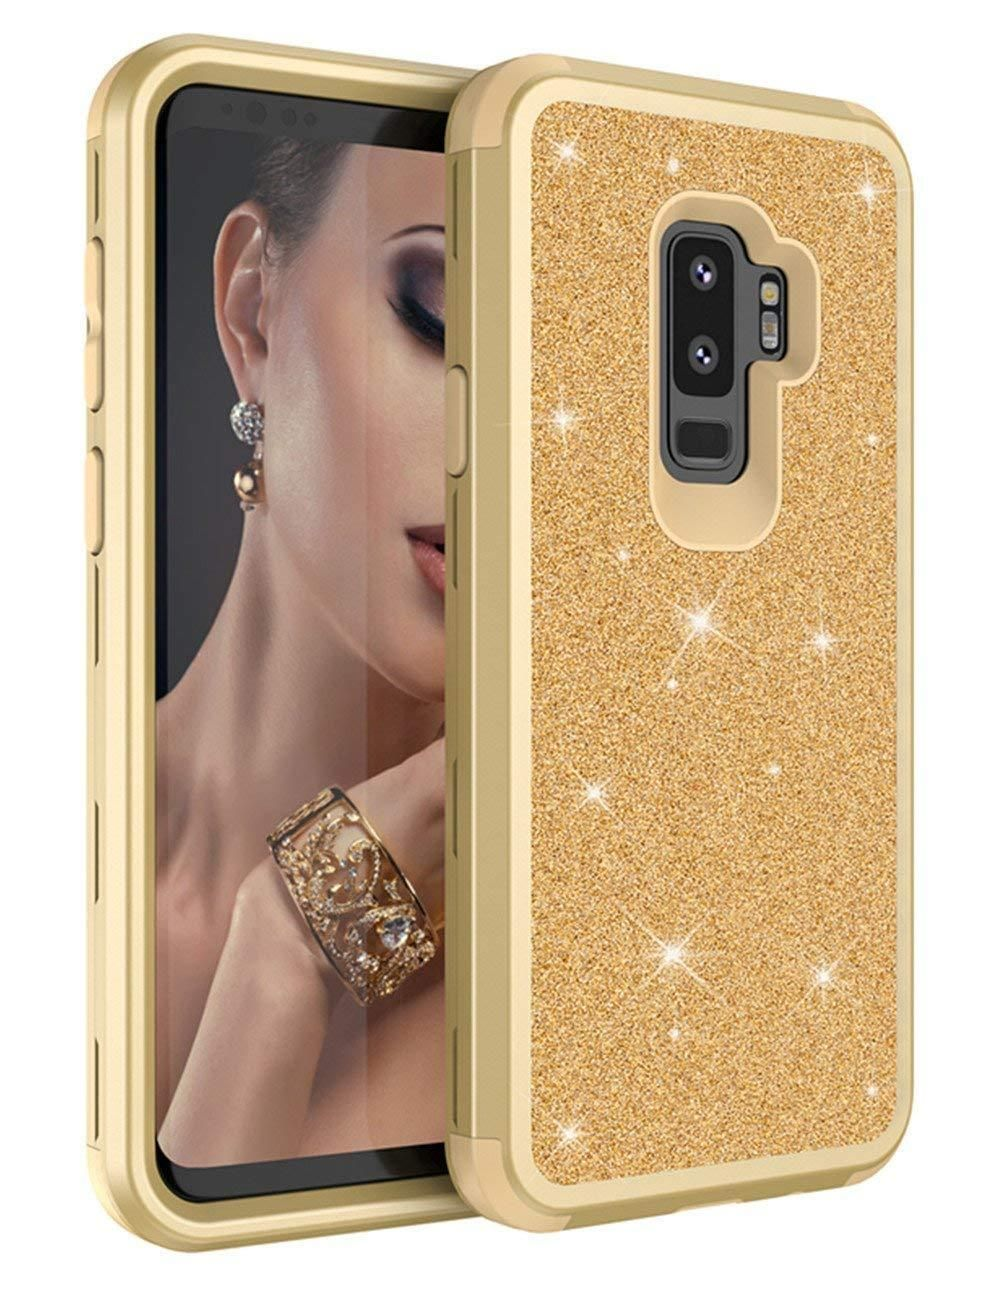 Samsung Galaxy S9 Plus Hybrid Bling Glitter Shockproof Protective Case Gold Fashion Bling Case Designed For Sam Samsung Galaxy S9 Bling Design Protective Cases